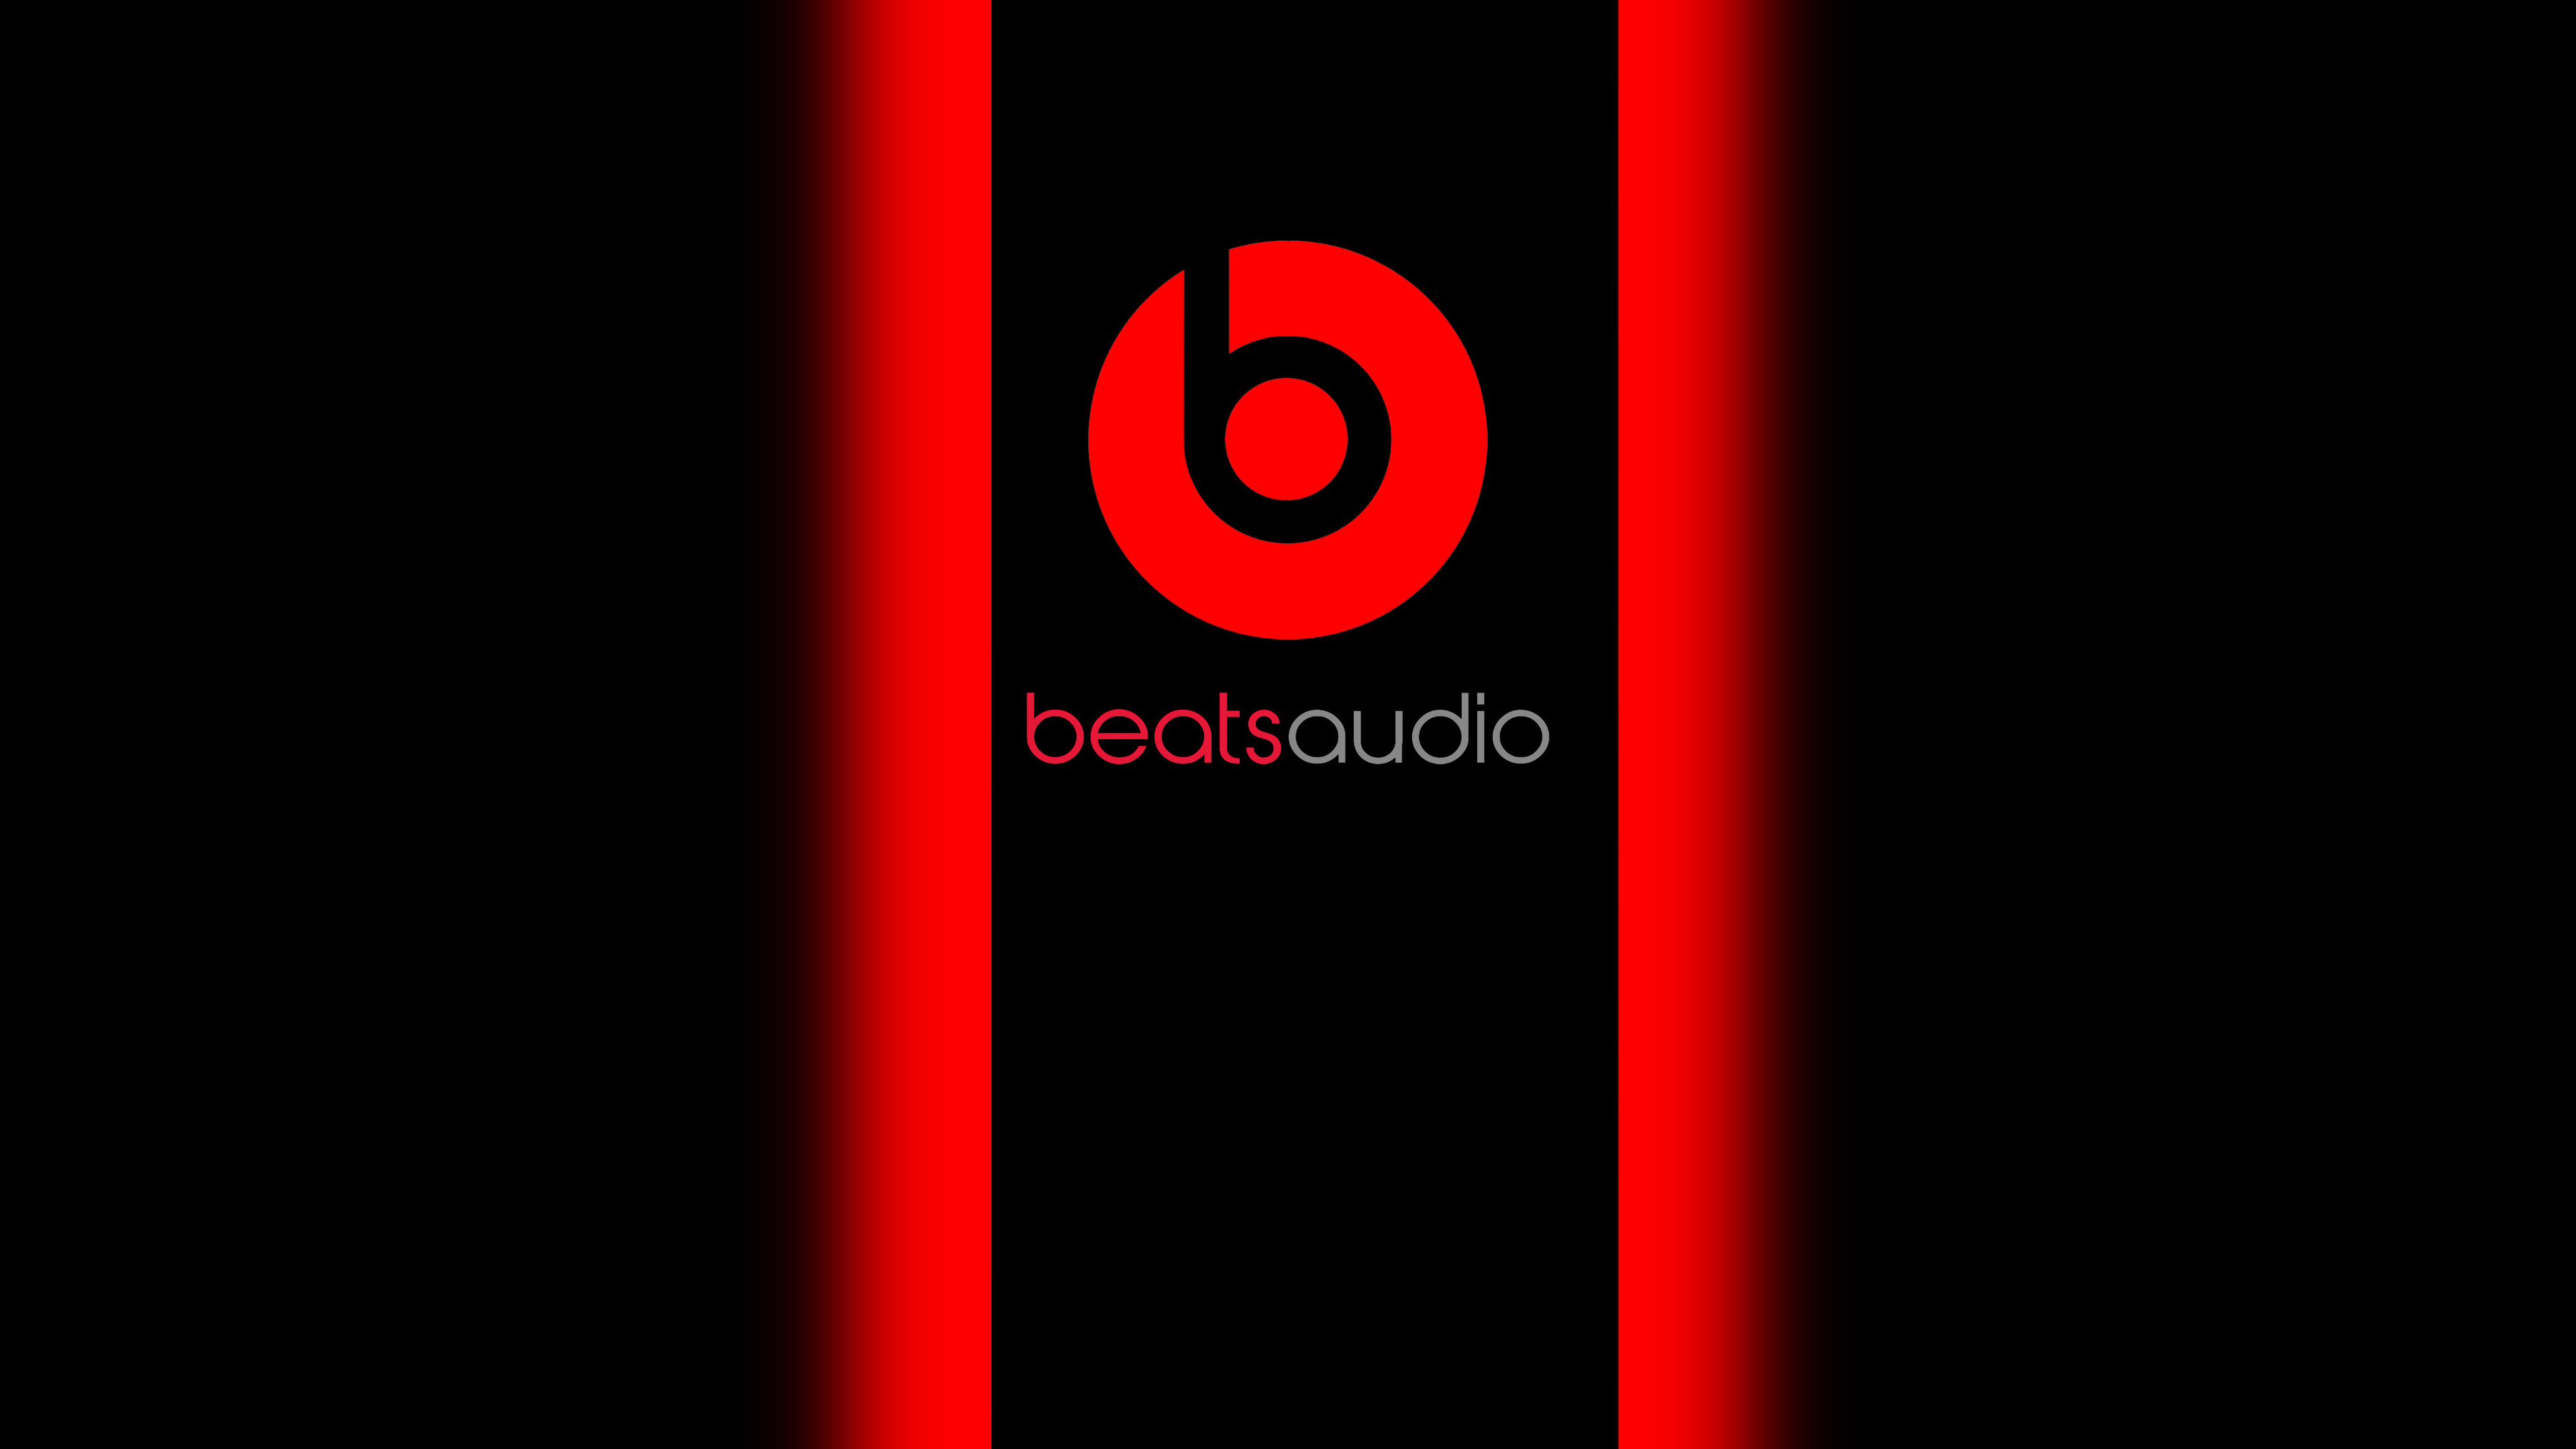 full hd beats backgrounds | page 2 of 3 | wallpaper.wiki